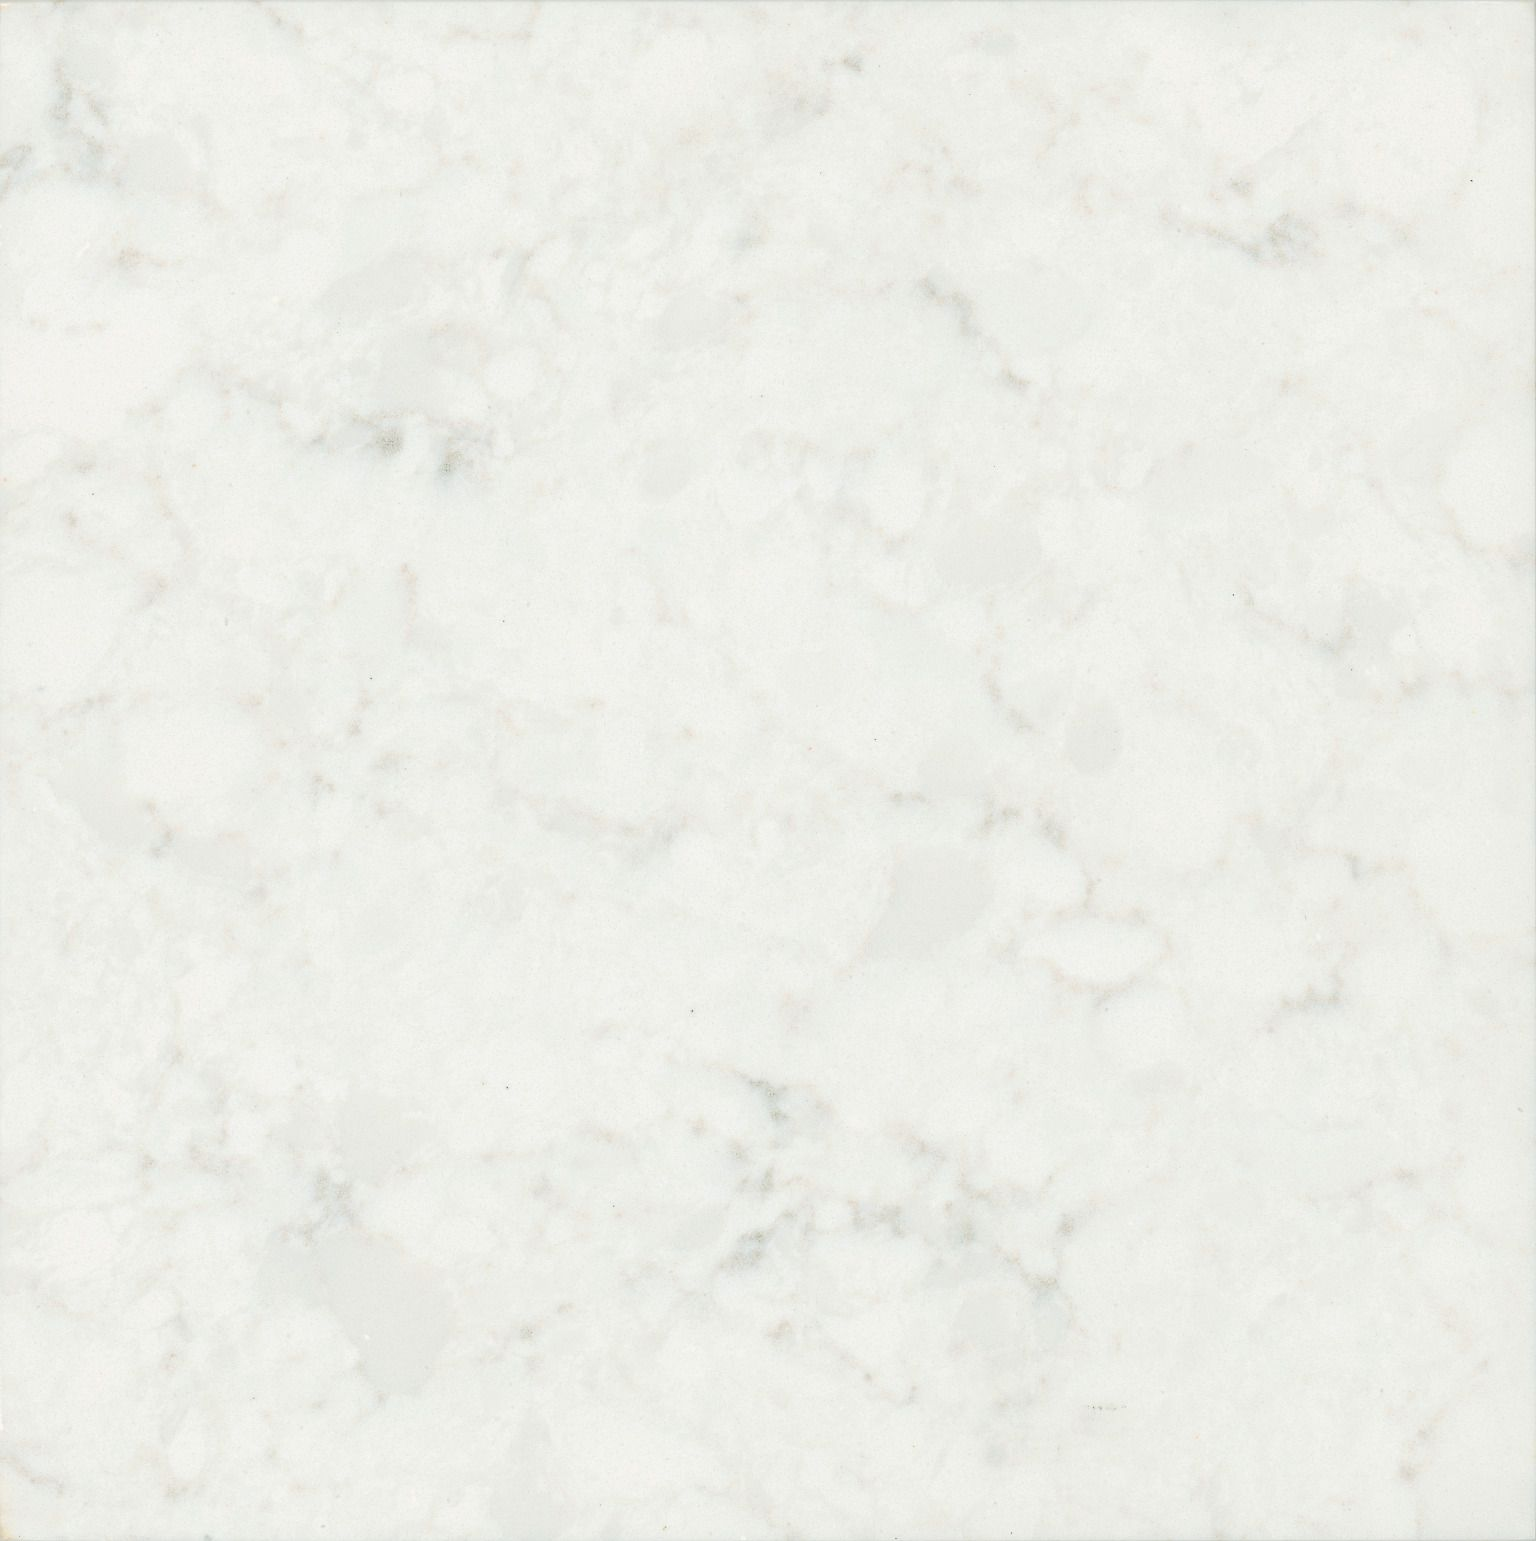 Handleslifebeautifully Hanstone Campina Can Be Found In The Serenbeshowhouse Kitchen And Bath Design Quartz Kitchen Countertops Kitchen Countertops